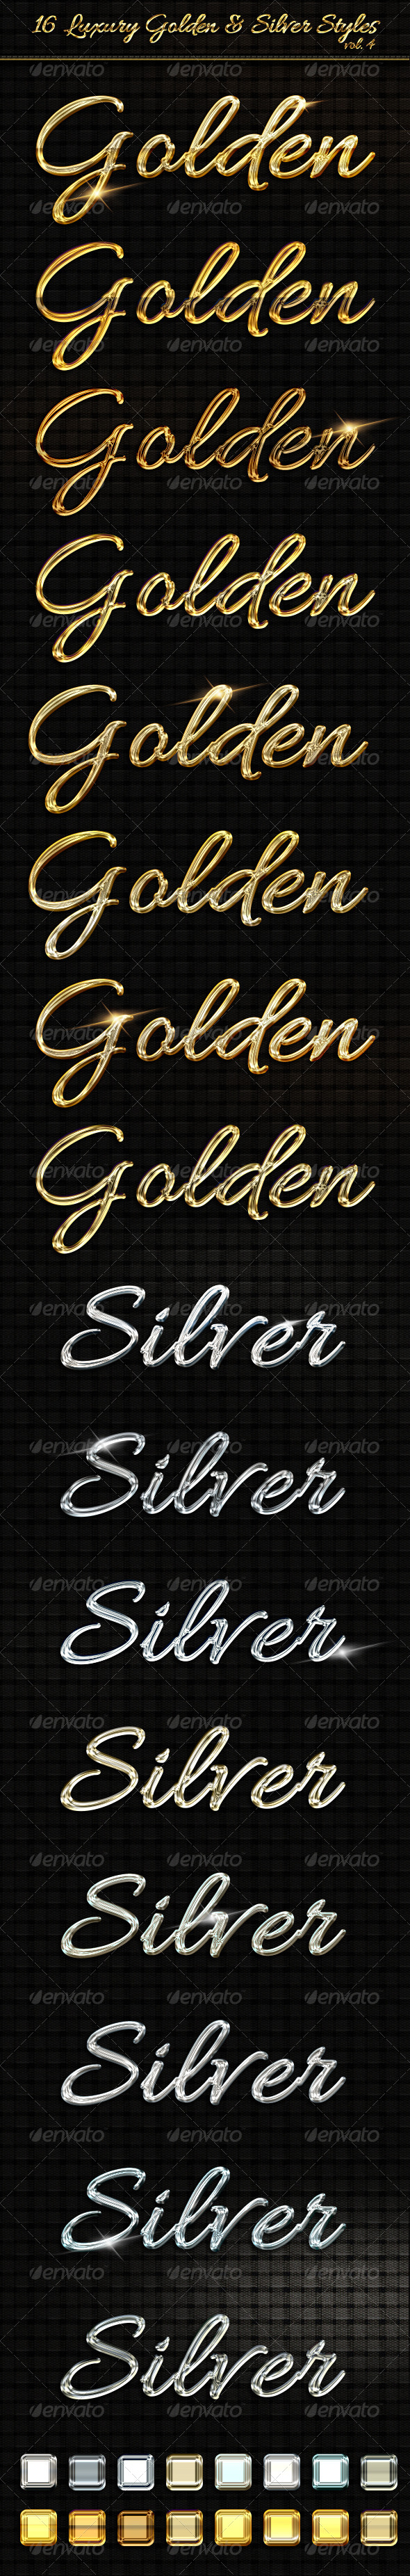 16 Luxury Golden & Silver Text Styles vol4 - Text Effects Styles